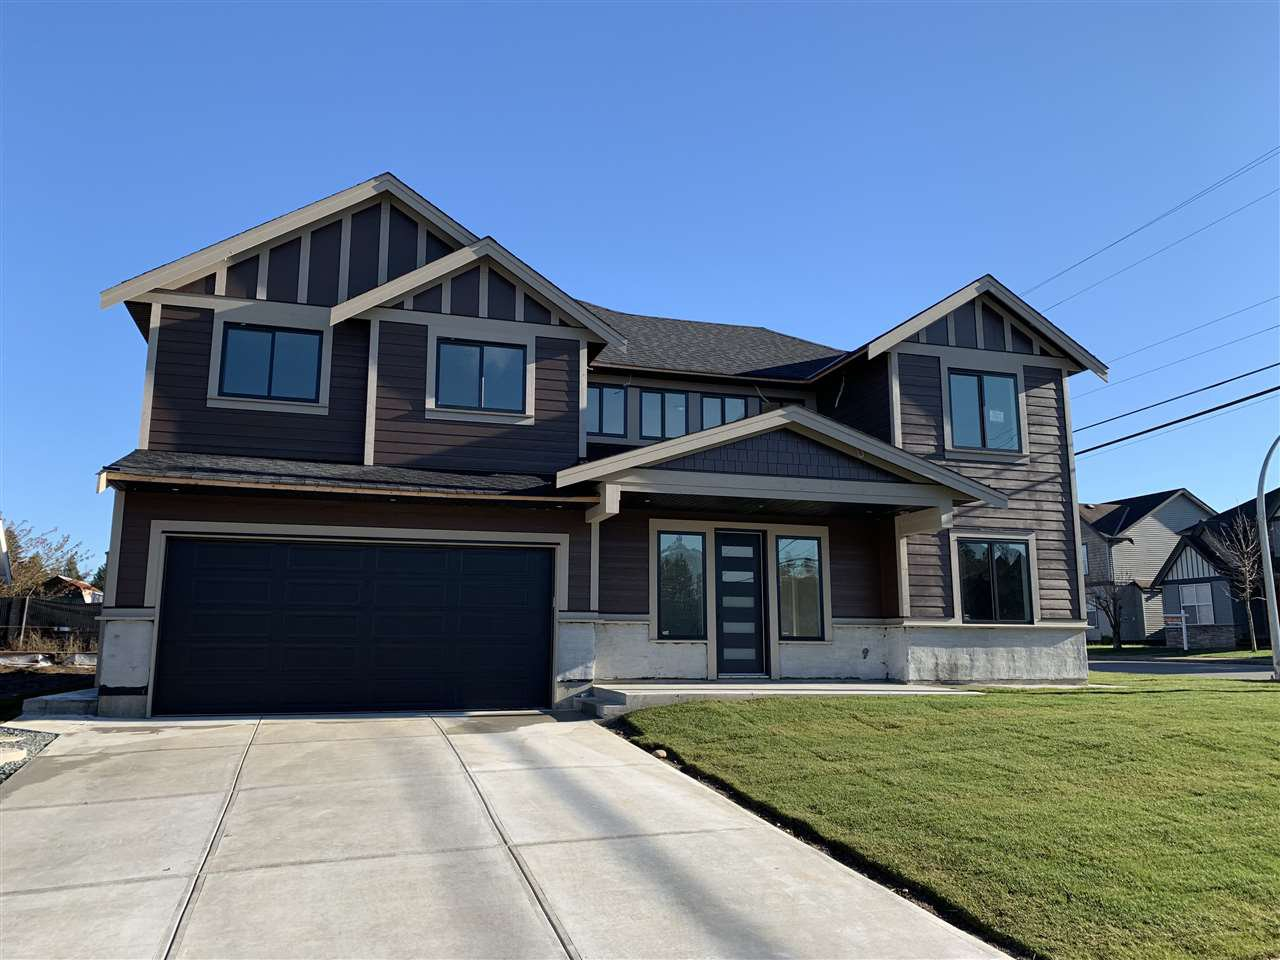 Main Photo: 8810 WOOLER Terrace in Mission: Mission BC House for sale : MLS®# R2413836